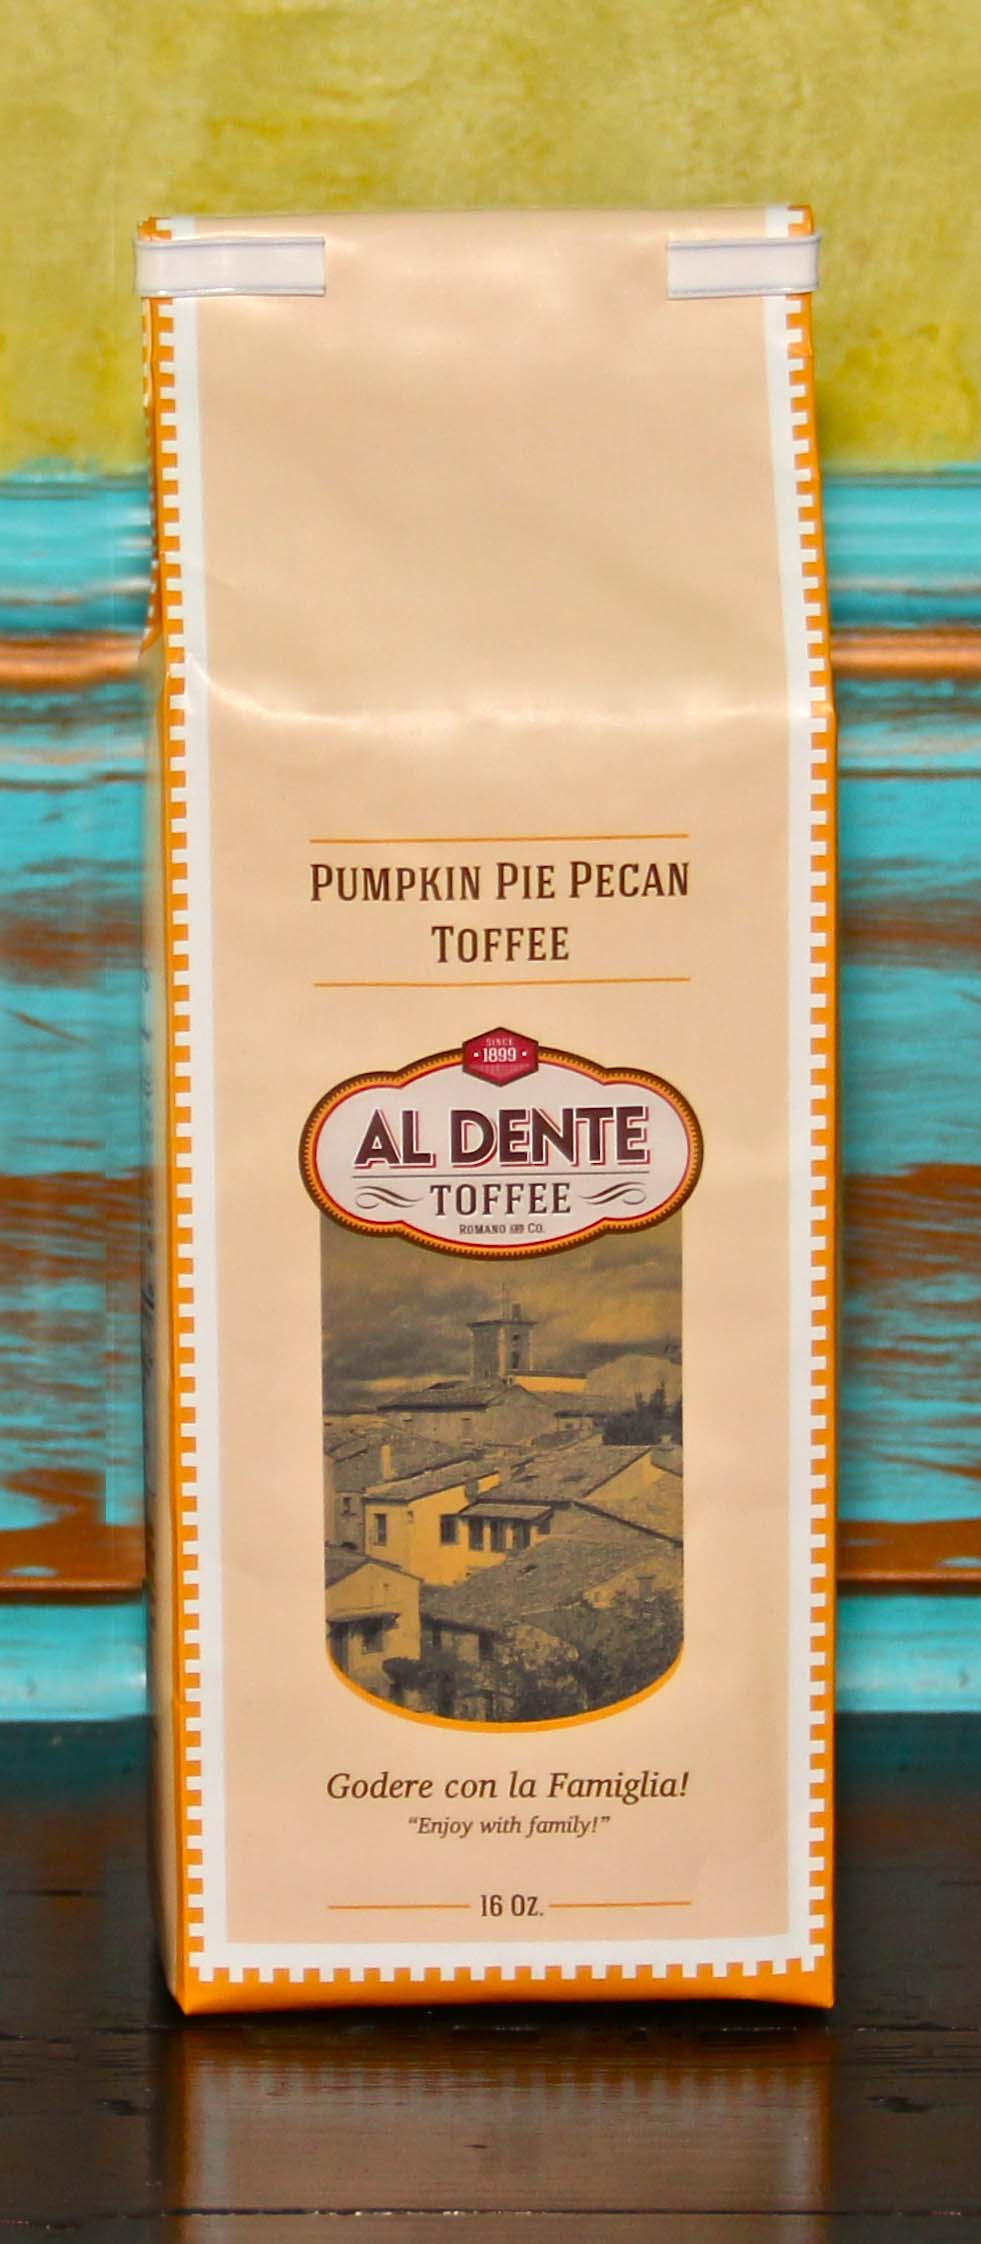 Click to enlarge Al Dente Toffee Pumpkin Pie Pecan Toffee 16 oz bag